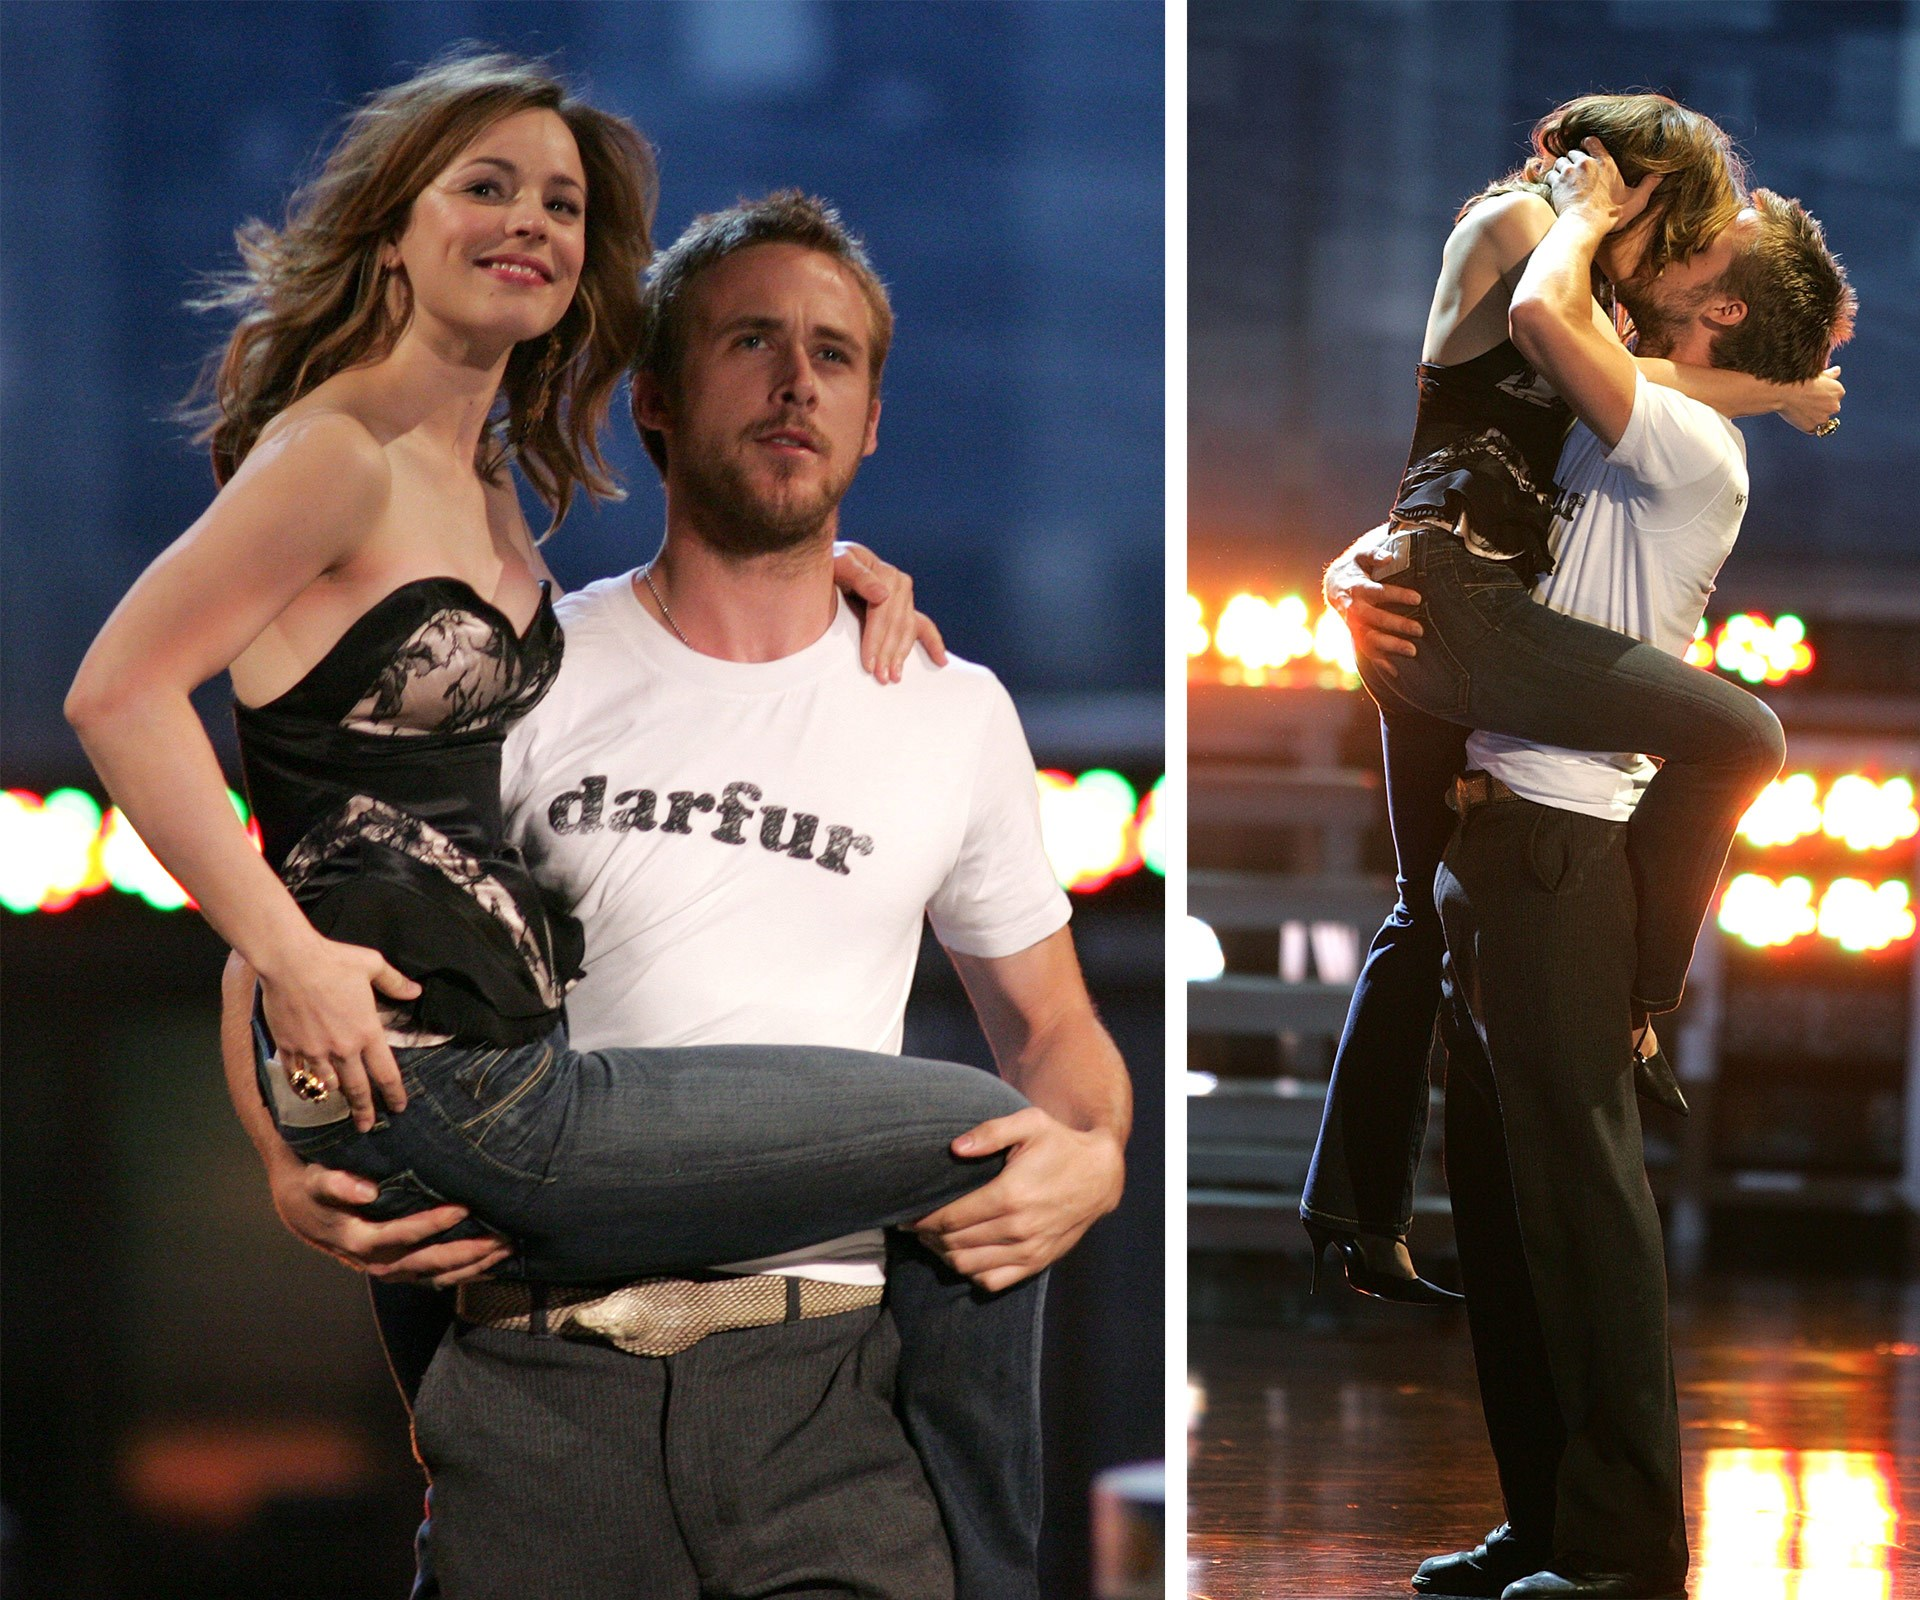 They embodied Noah and Allie and were the dream couple... #NeverForget! Sadly, the actors split in 2007.